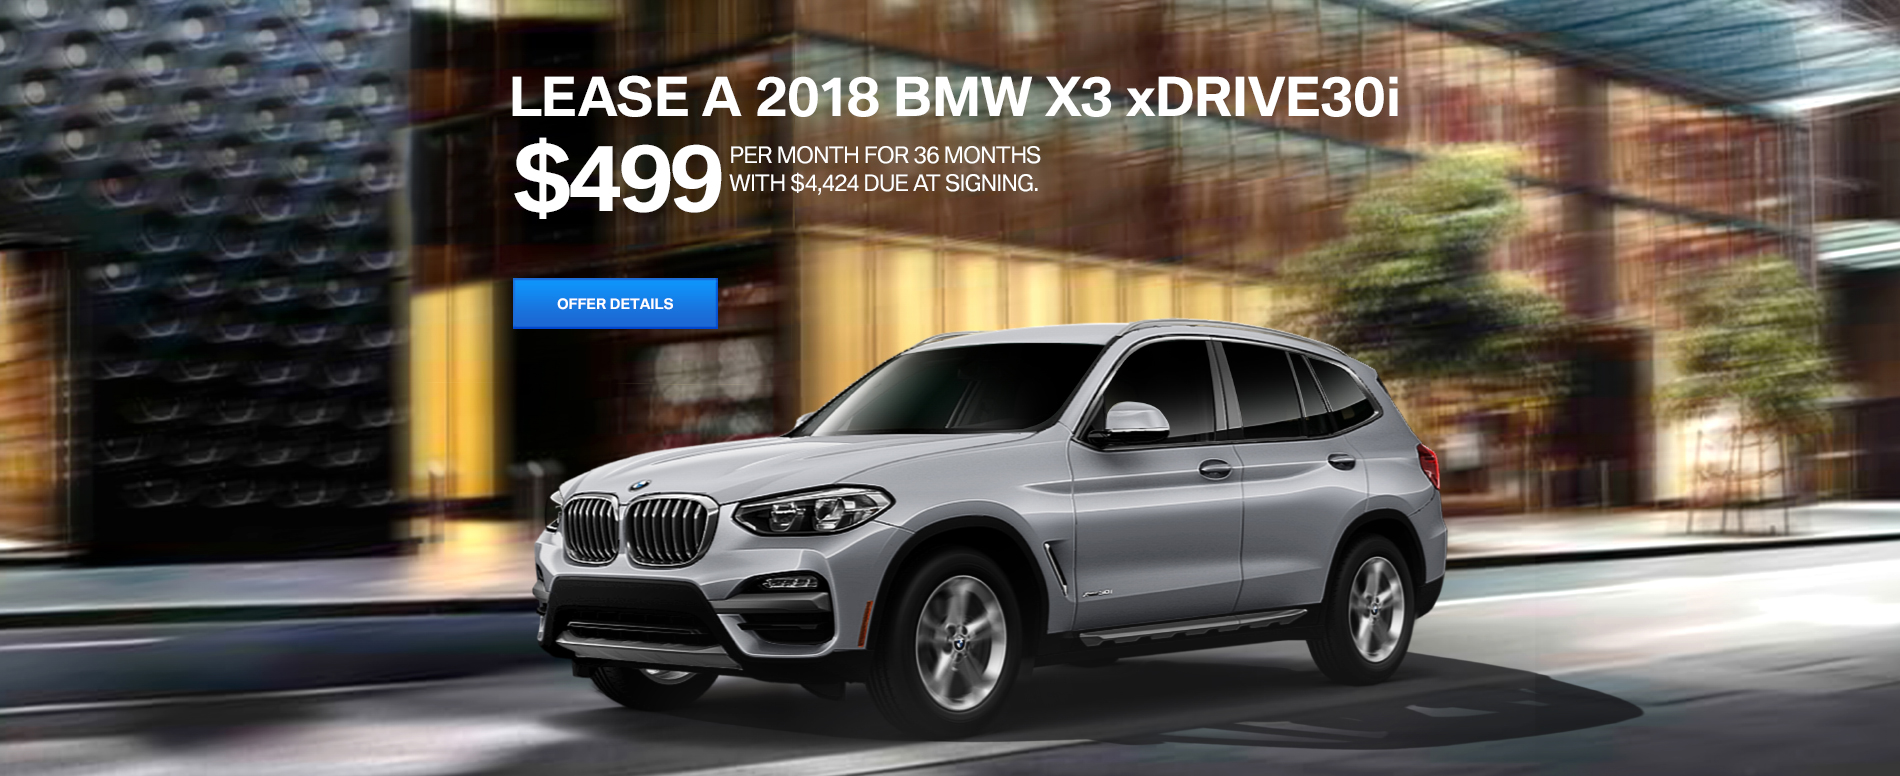 LEASE A 2018 X3 xDRIVE30i FOR $499 /MO FOR 36 MONTHS WITH $4,424